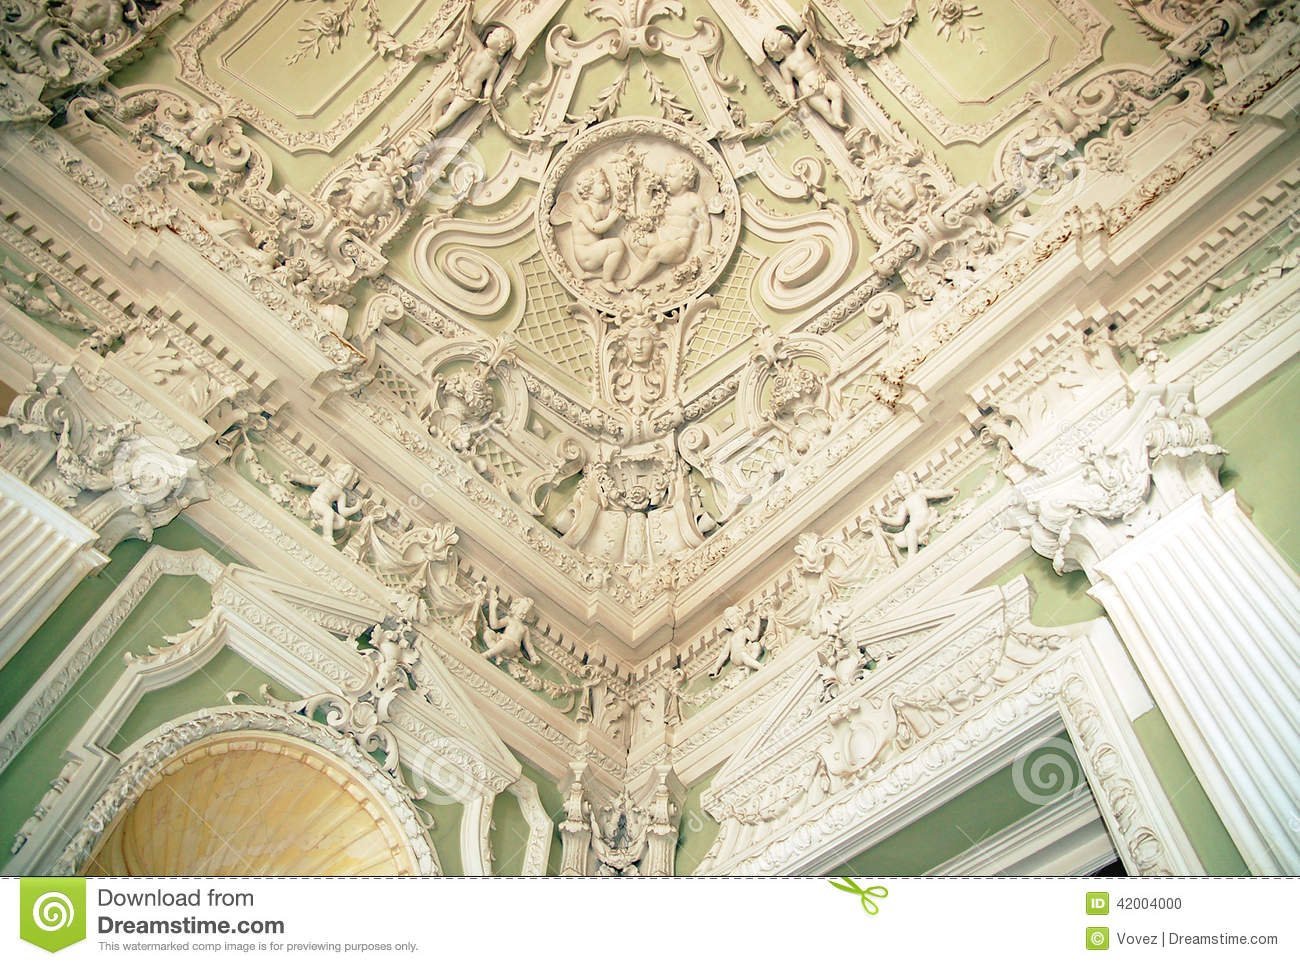 Stucco Ceilings In The Moika Palace, St. Petersburg Stock Photo.